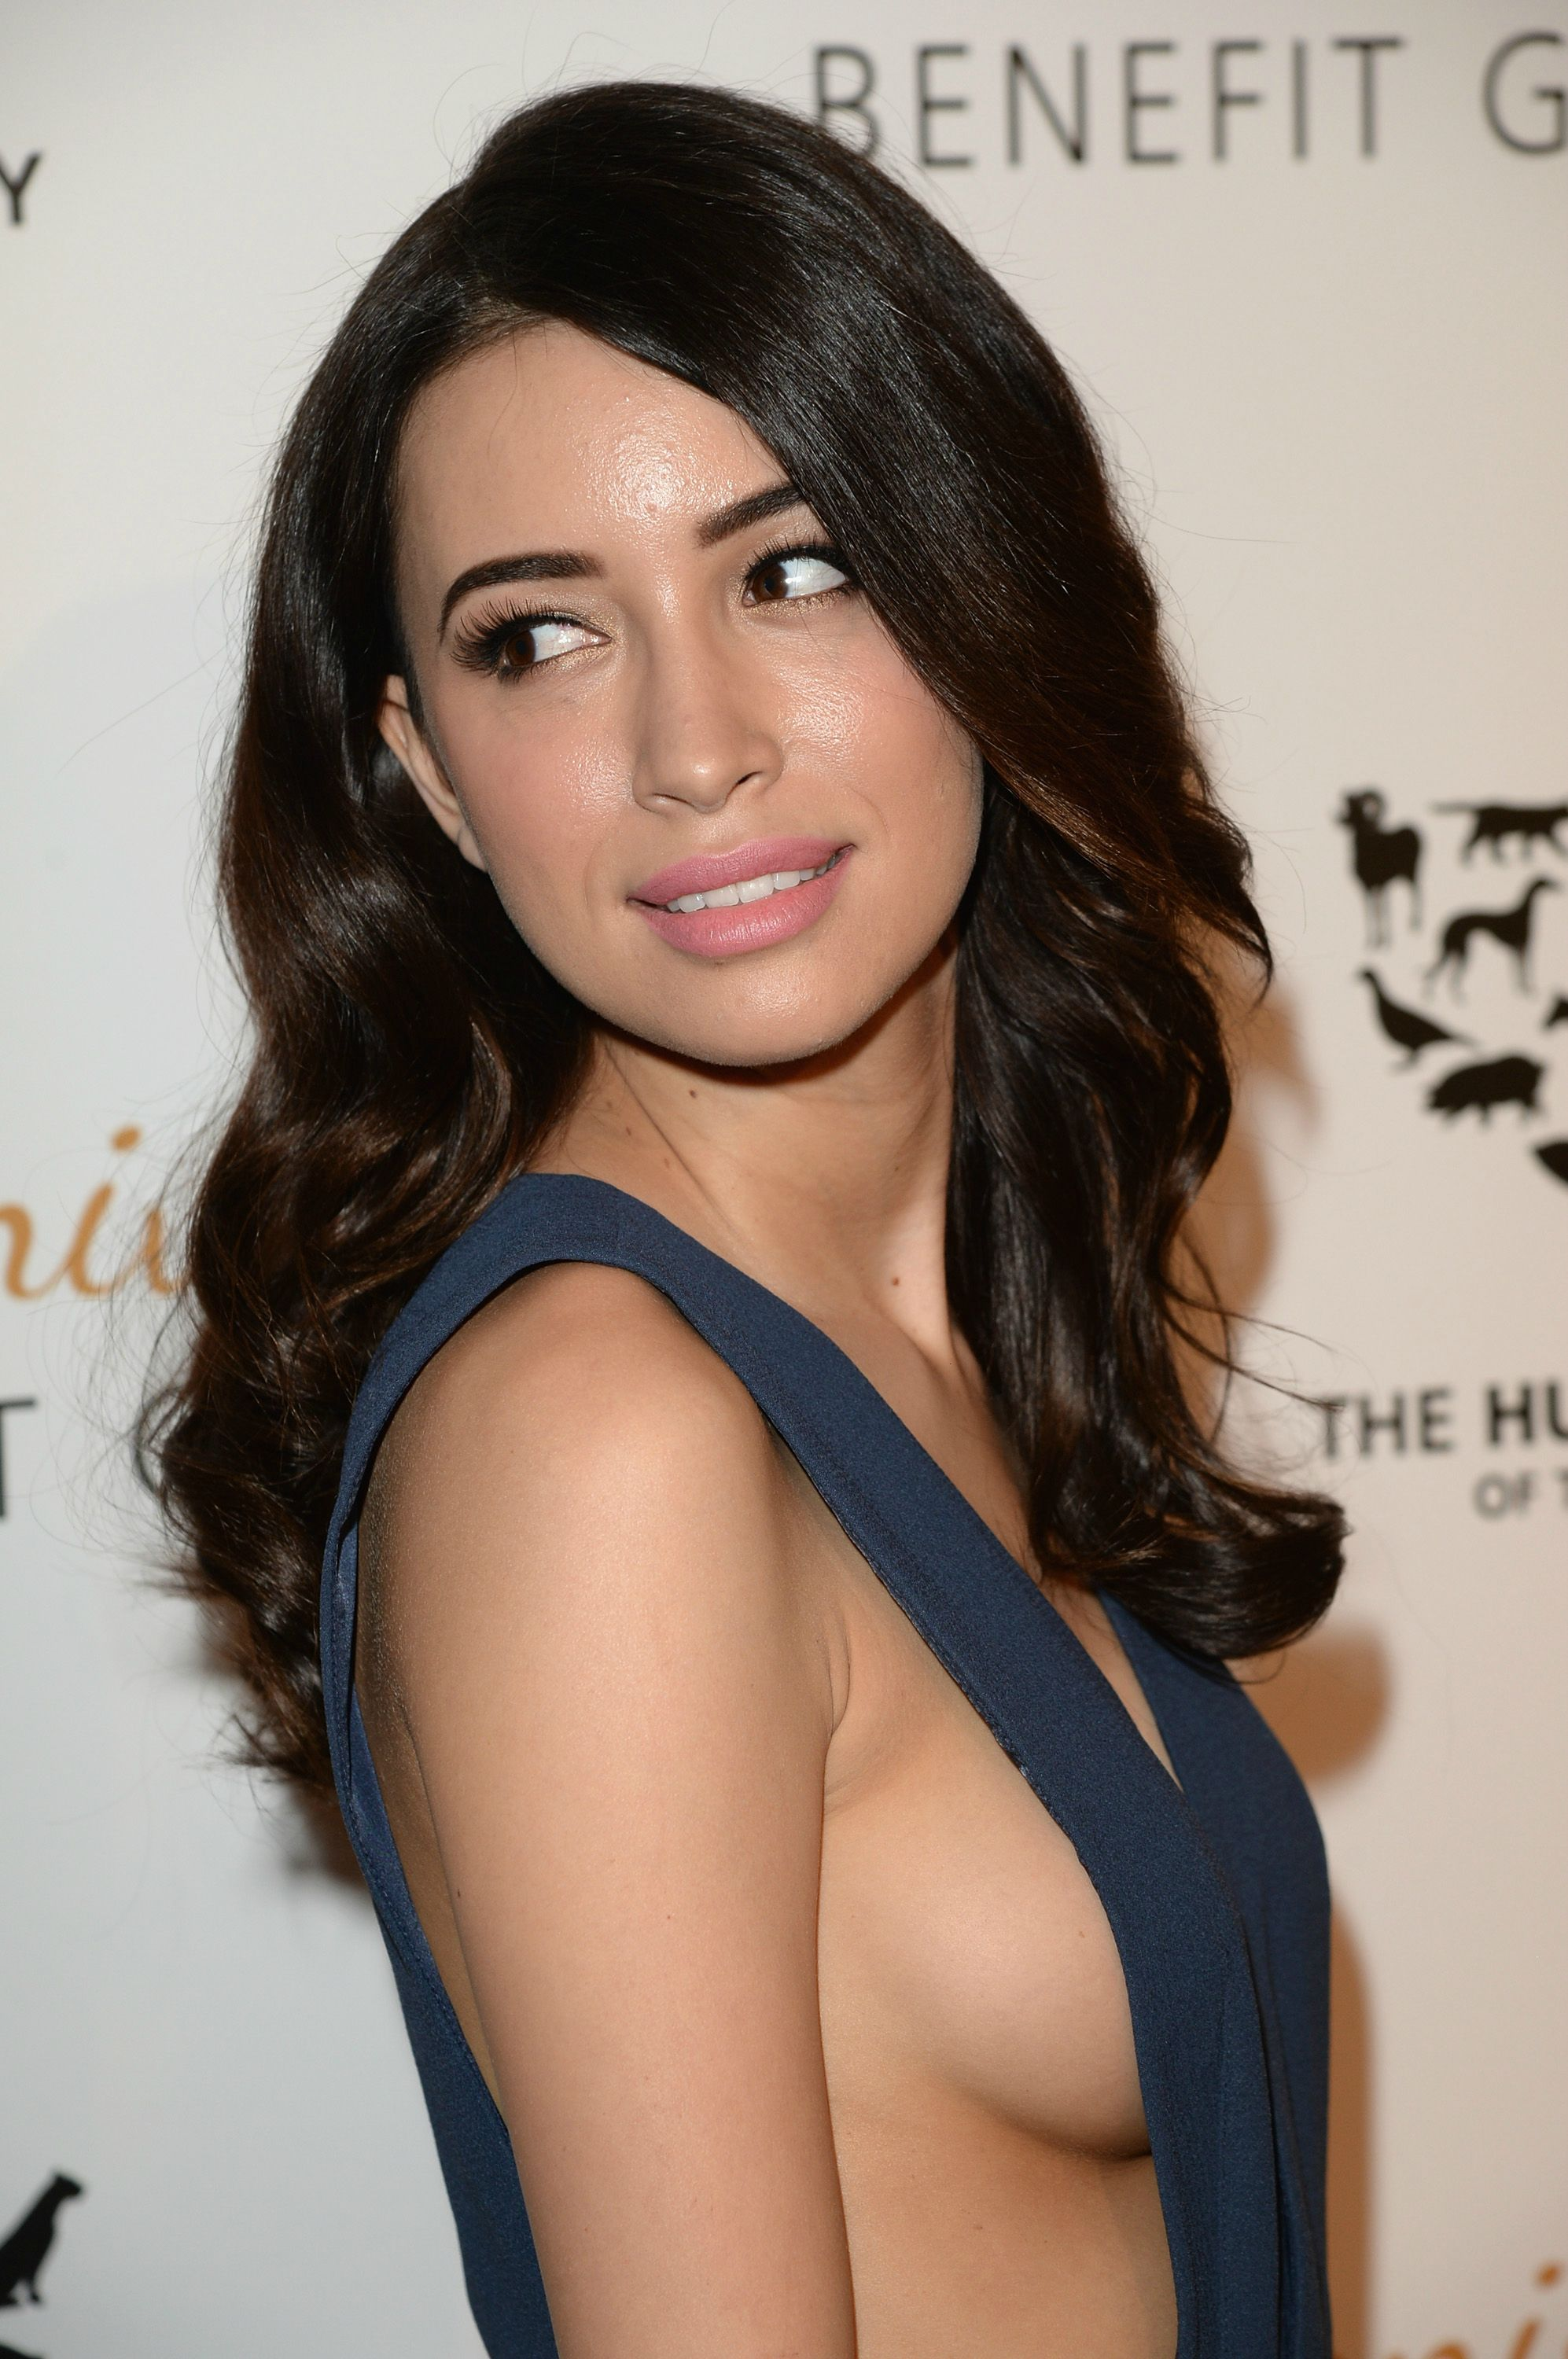 Christian serratos sexy ass and boobs about will